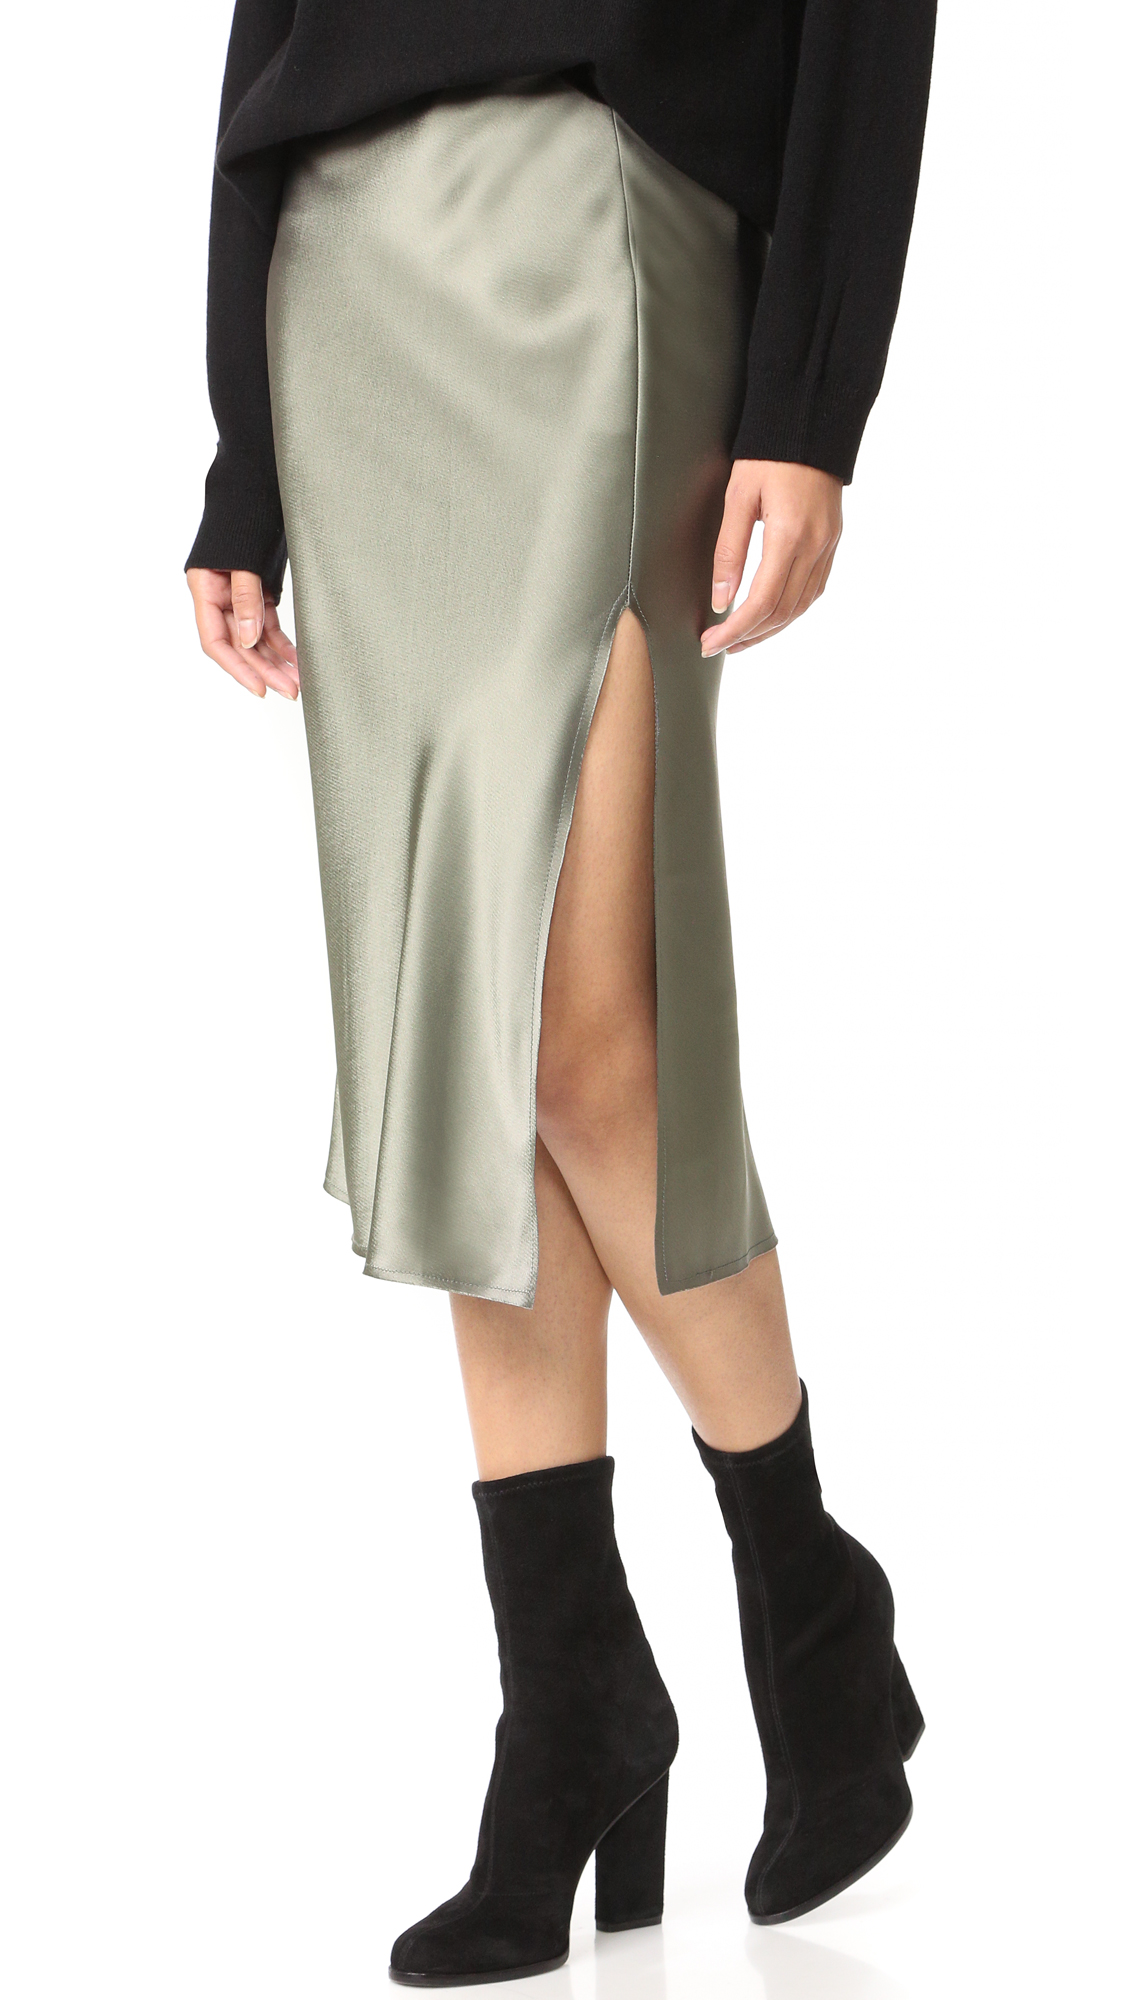 Emerson Thorpe Tori Mid Length Skirt - Smoke